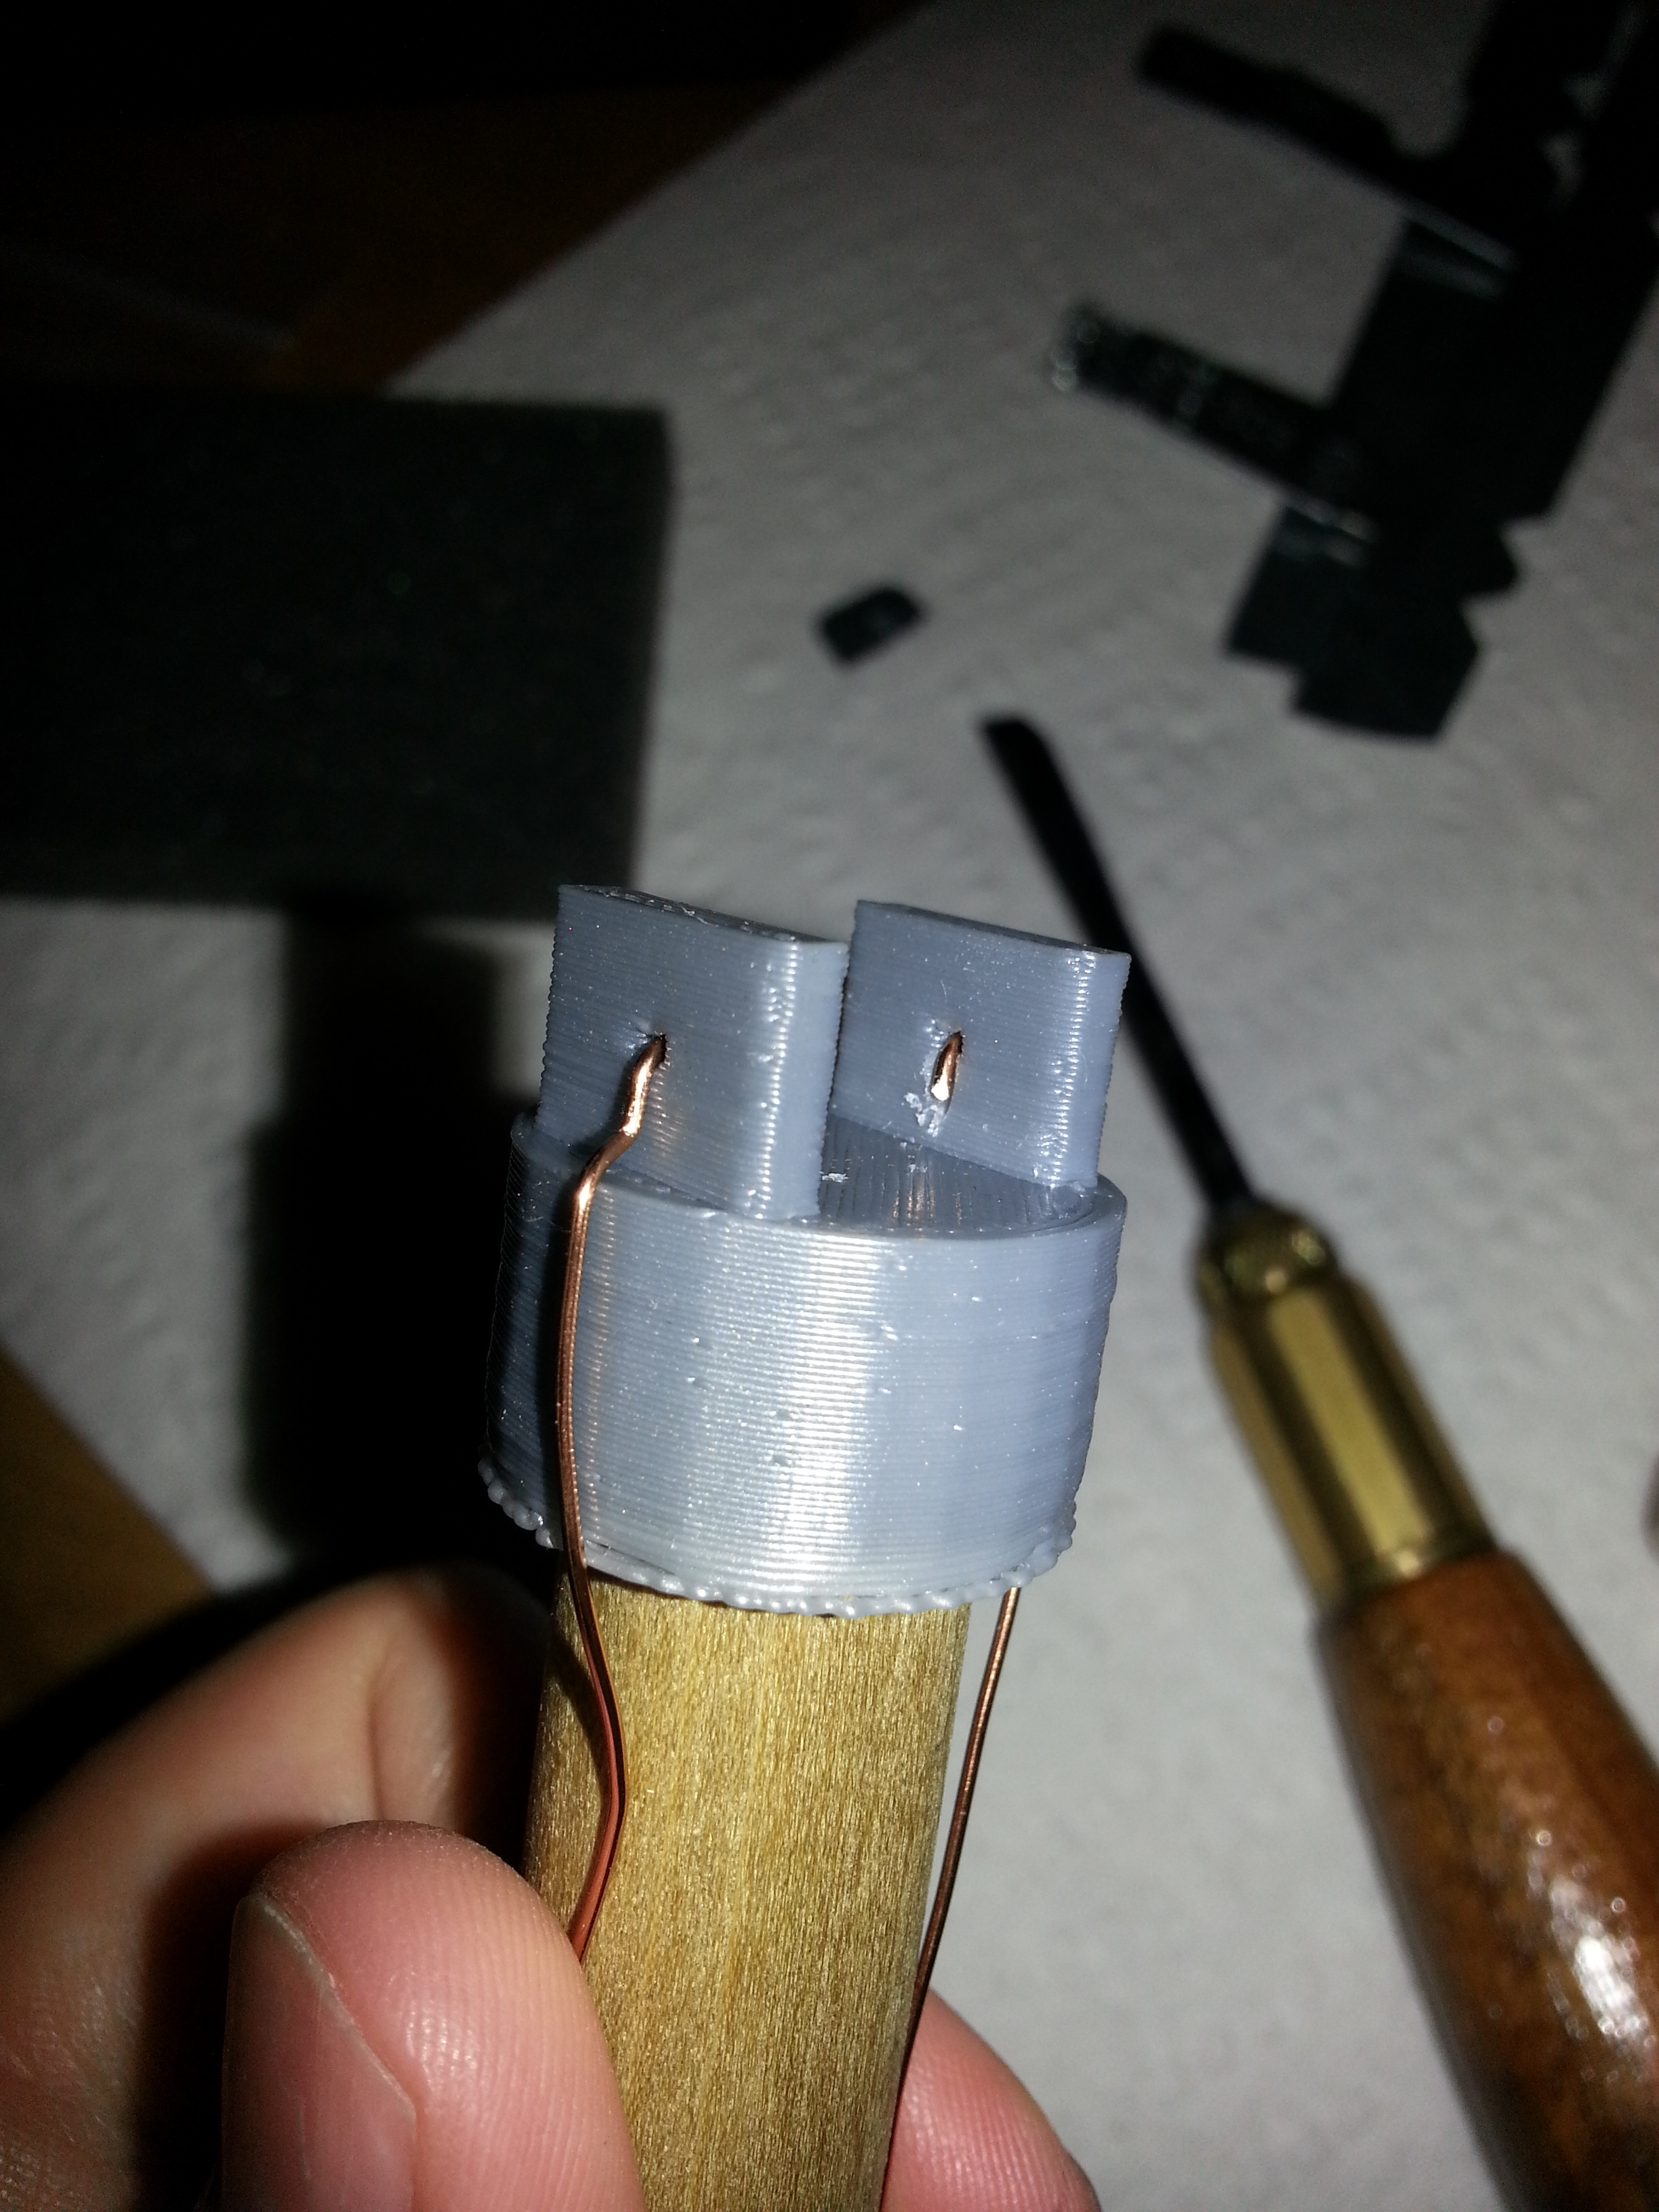 Probe tip with wire inserted